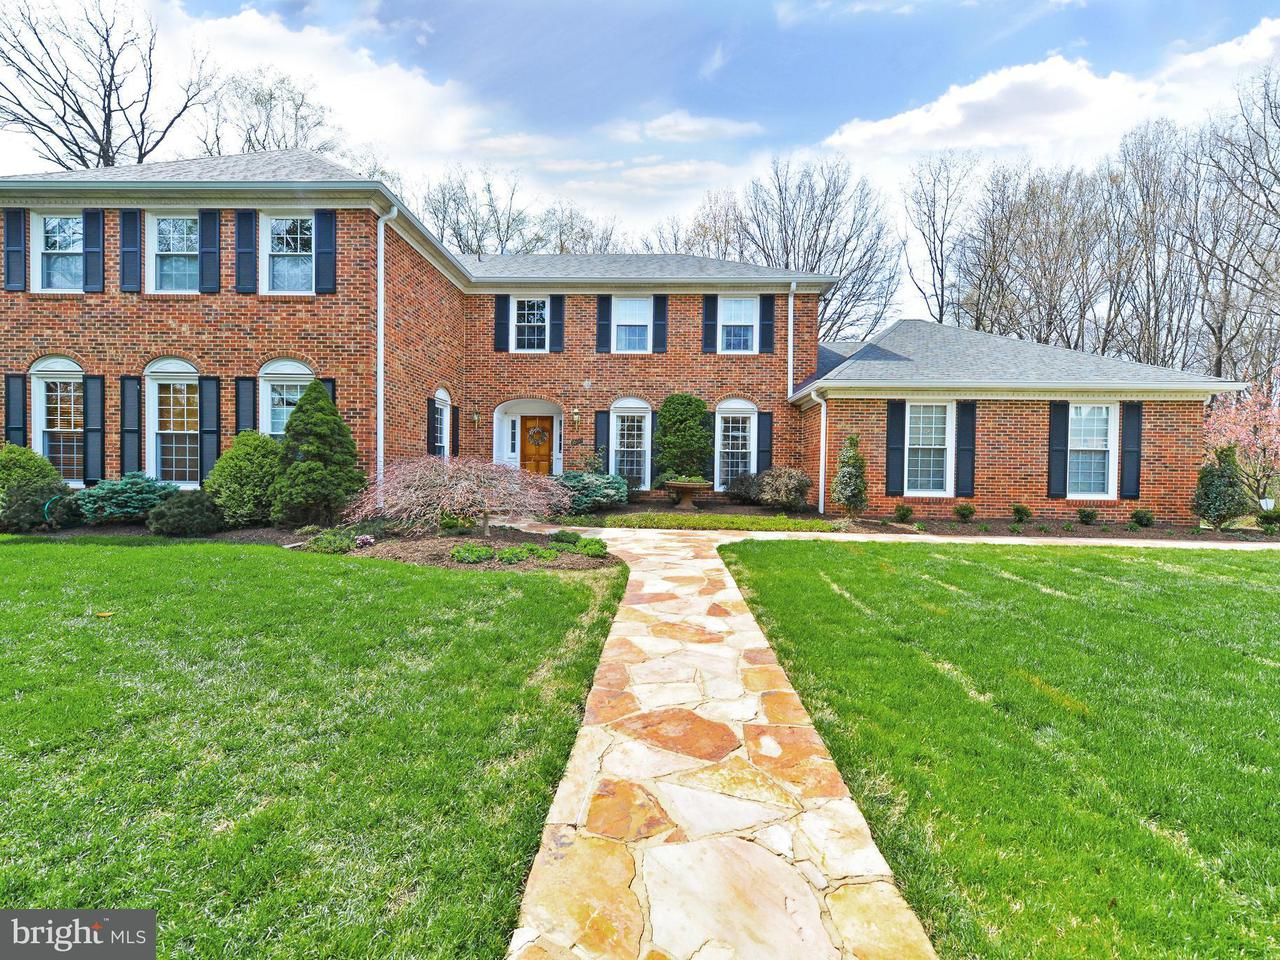 Single Family Home for Sale at 1600 King James Place 1600 King James Place Alexandria, Virginia 22304 United States